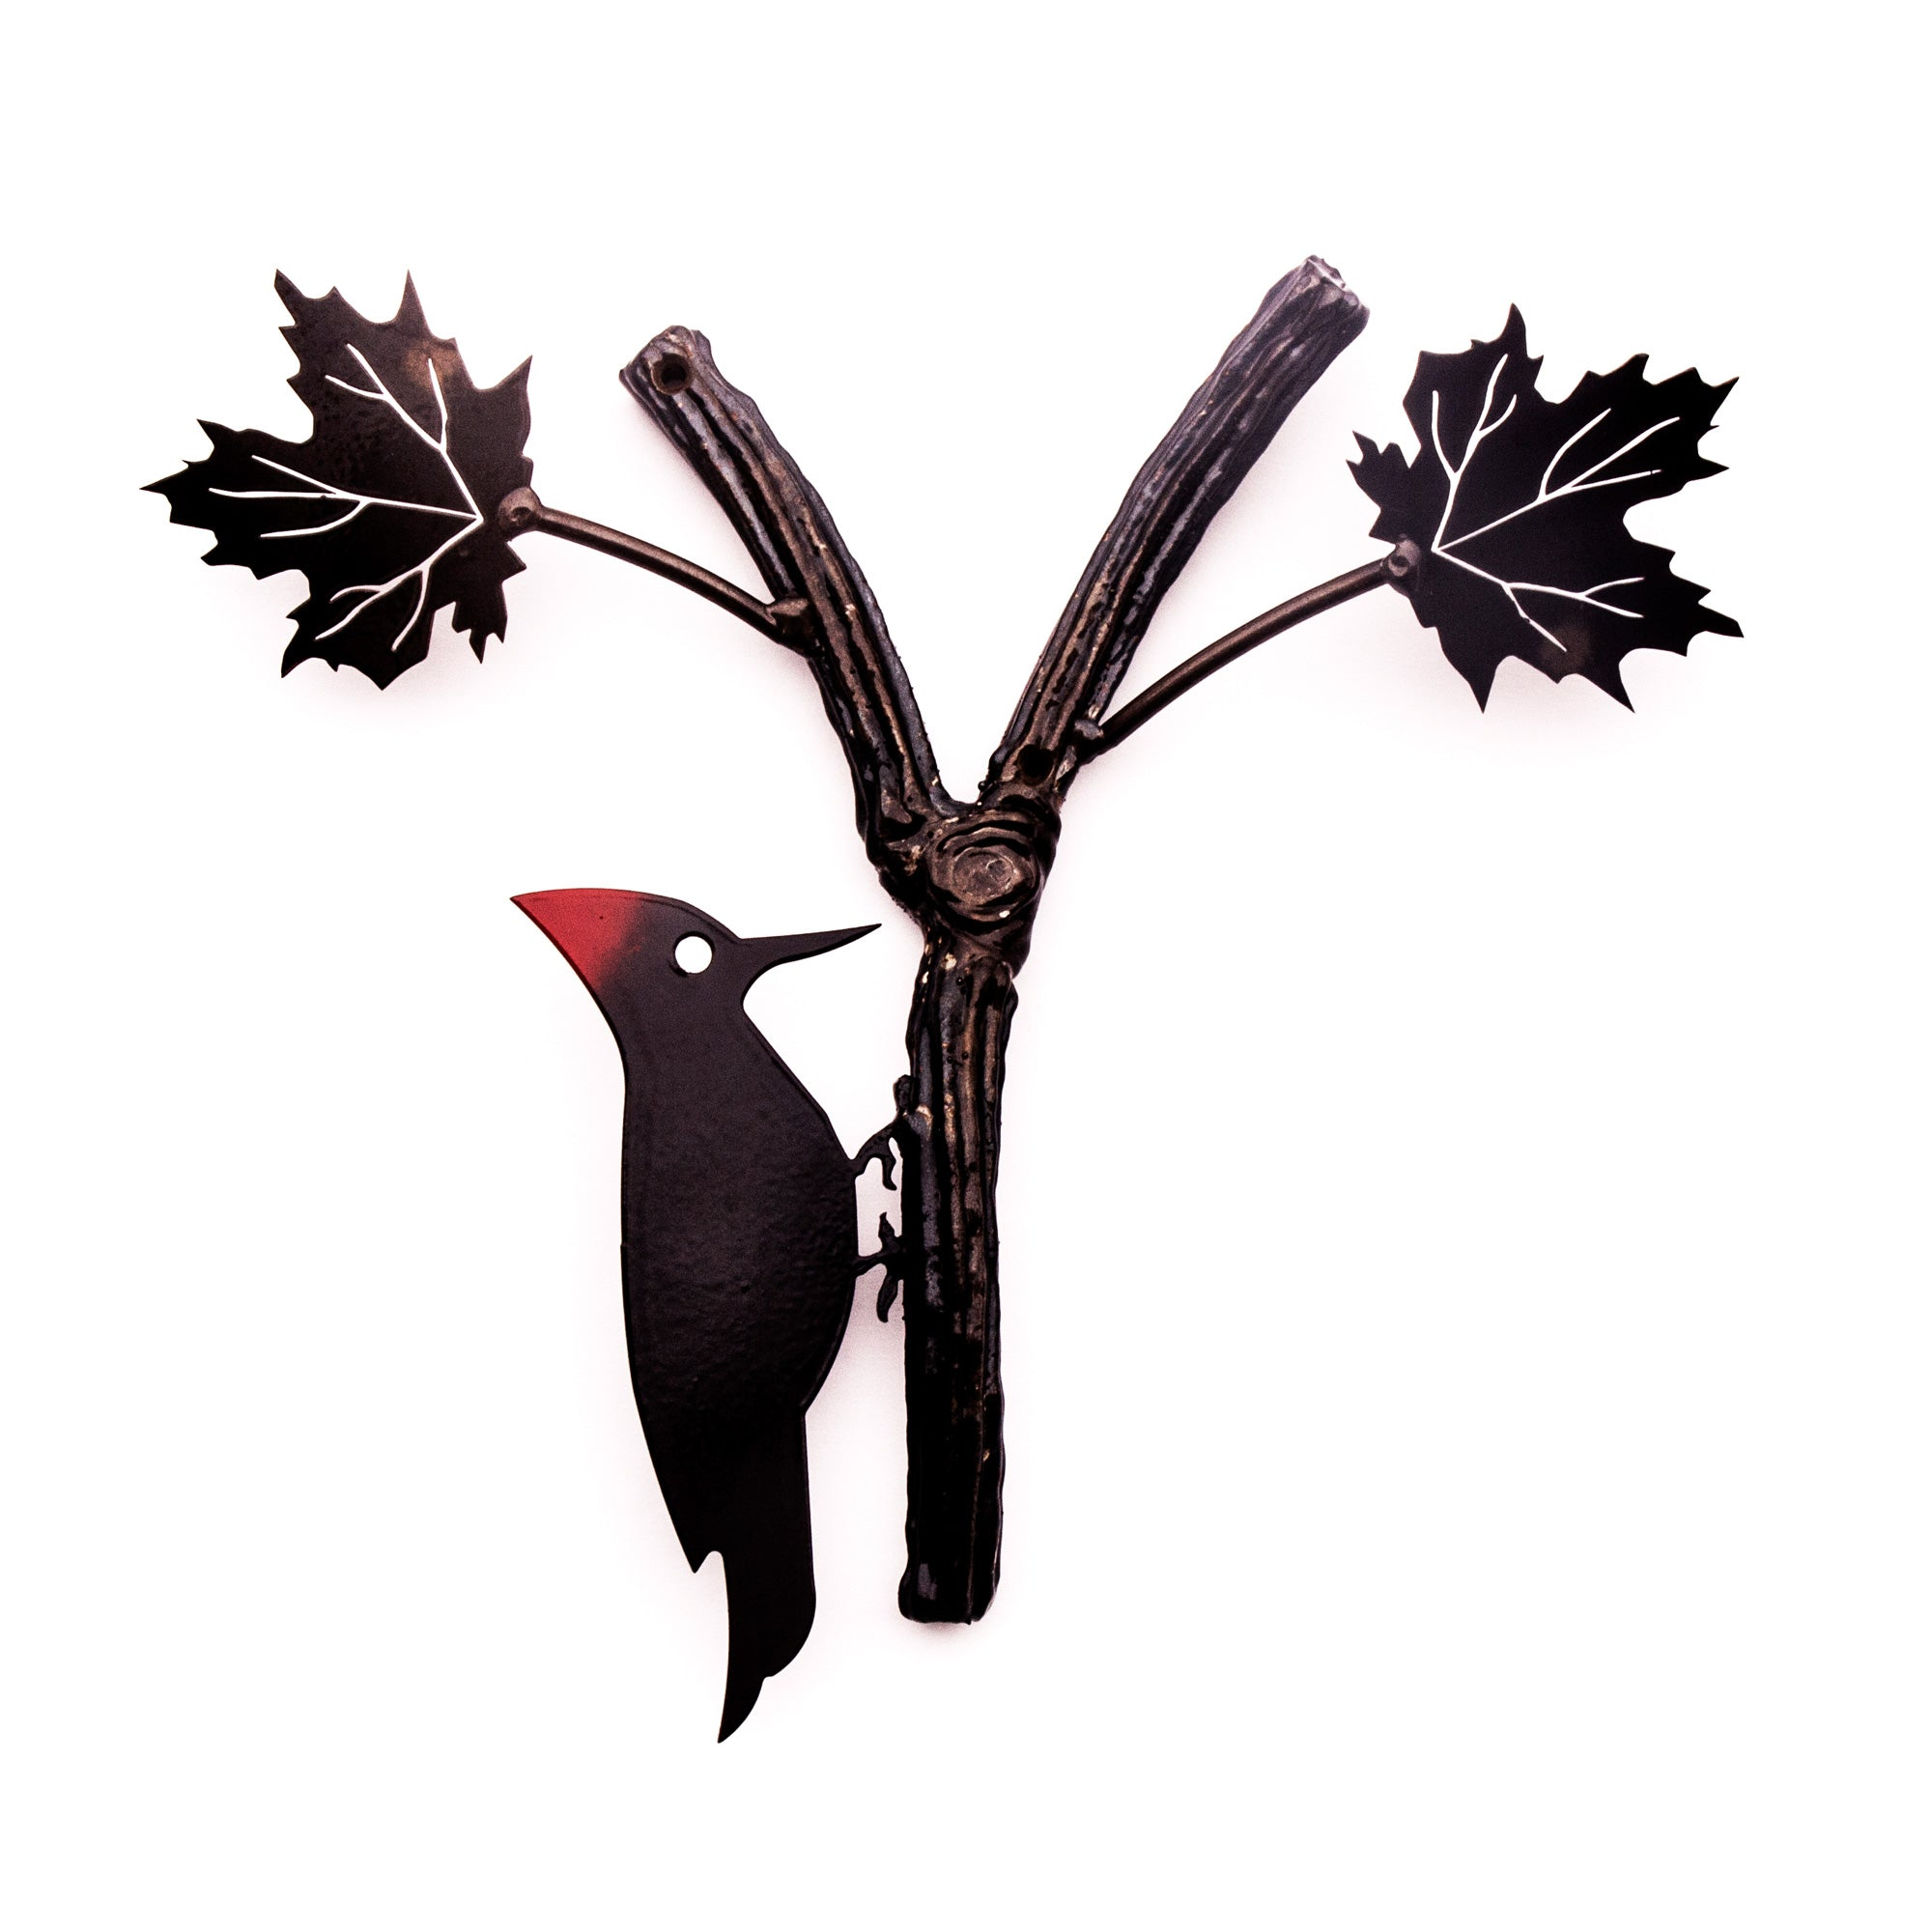 Woodpecker Sculpture Metal Wall Art Bird with Red Crest for Home Garden Decor/Outdoor Art